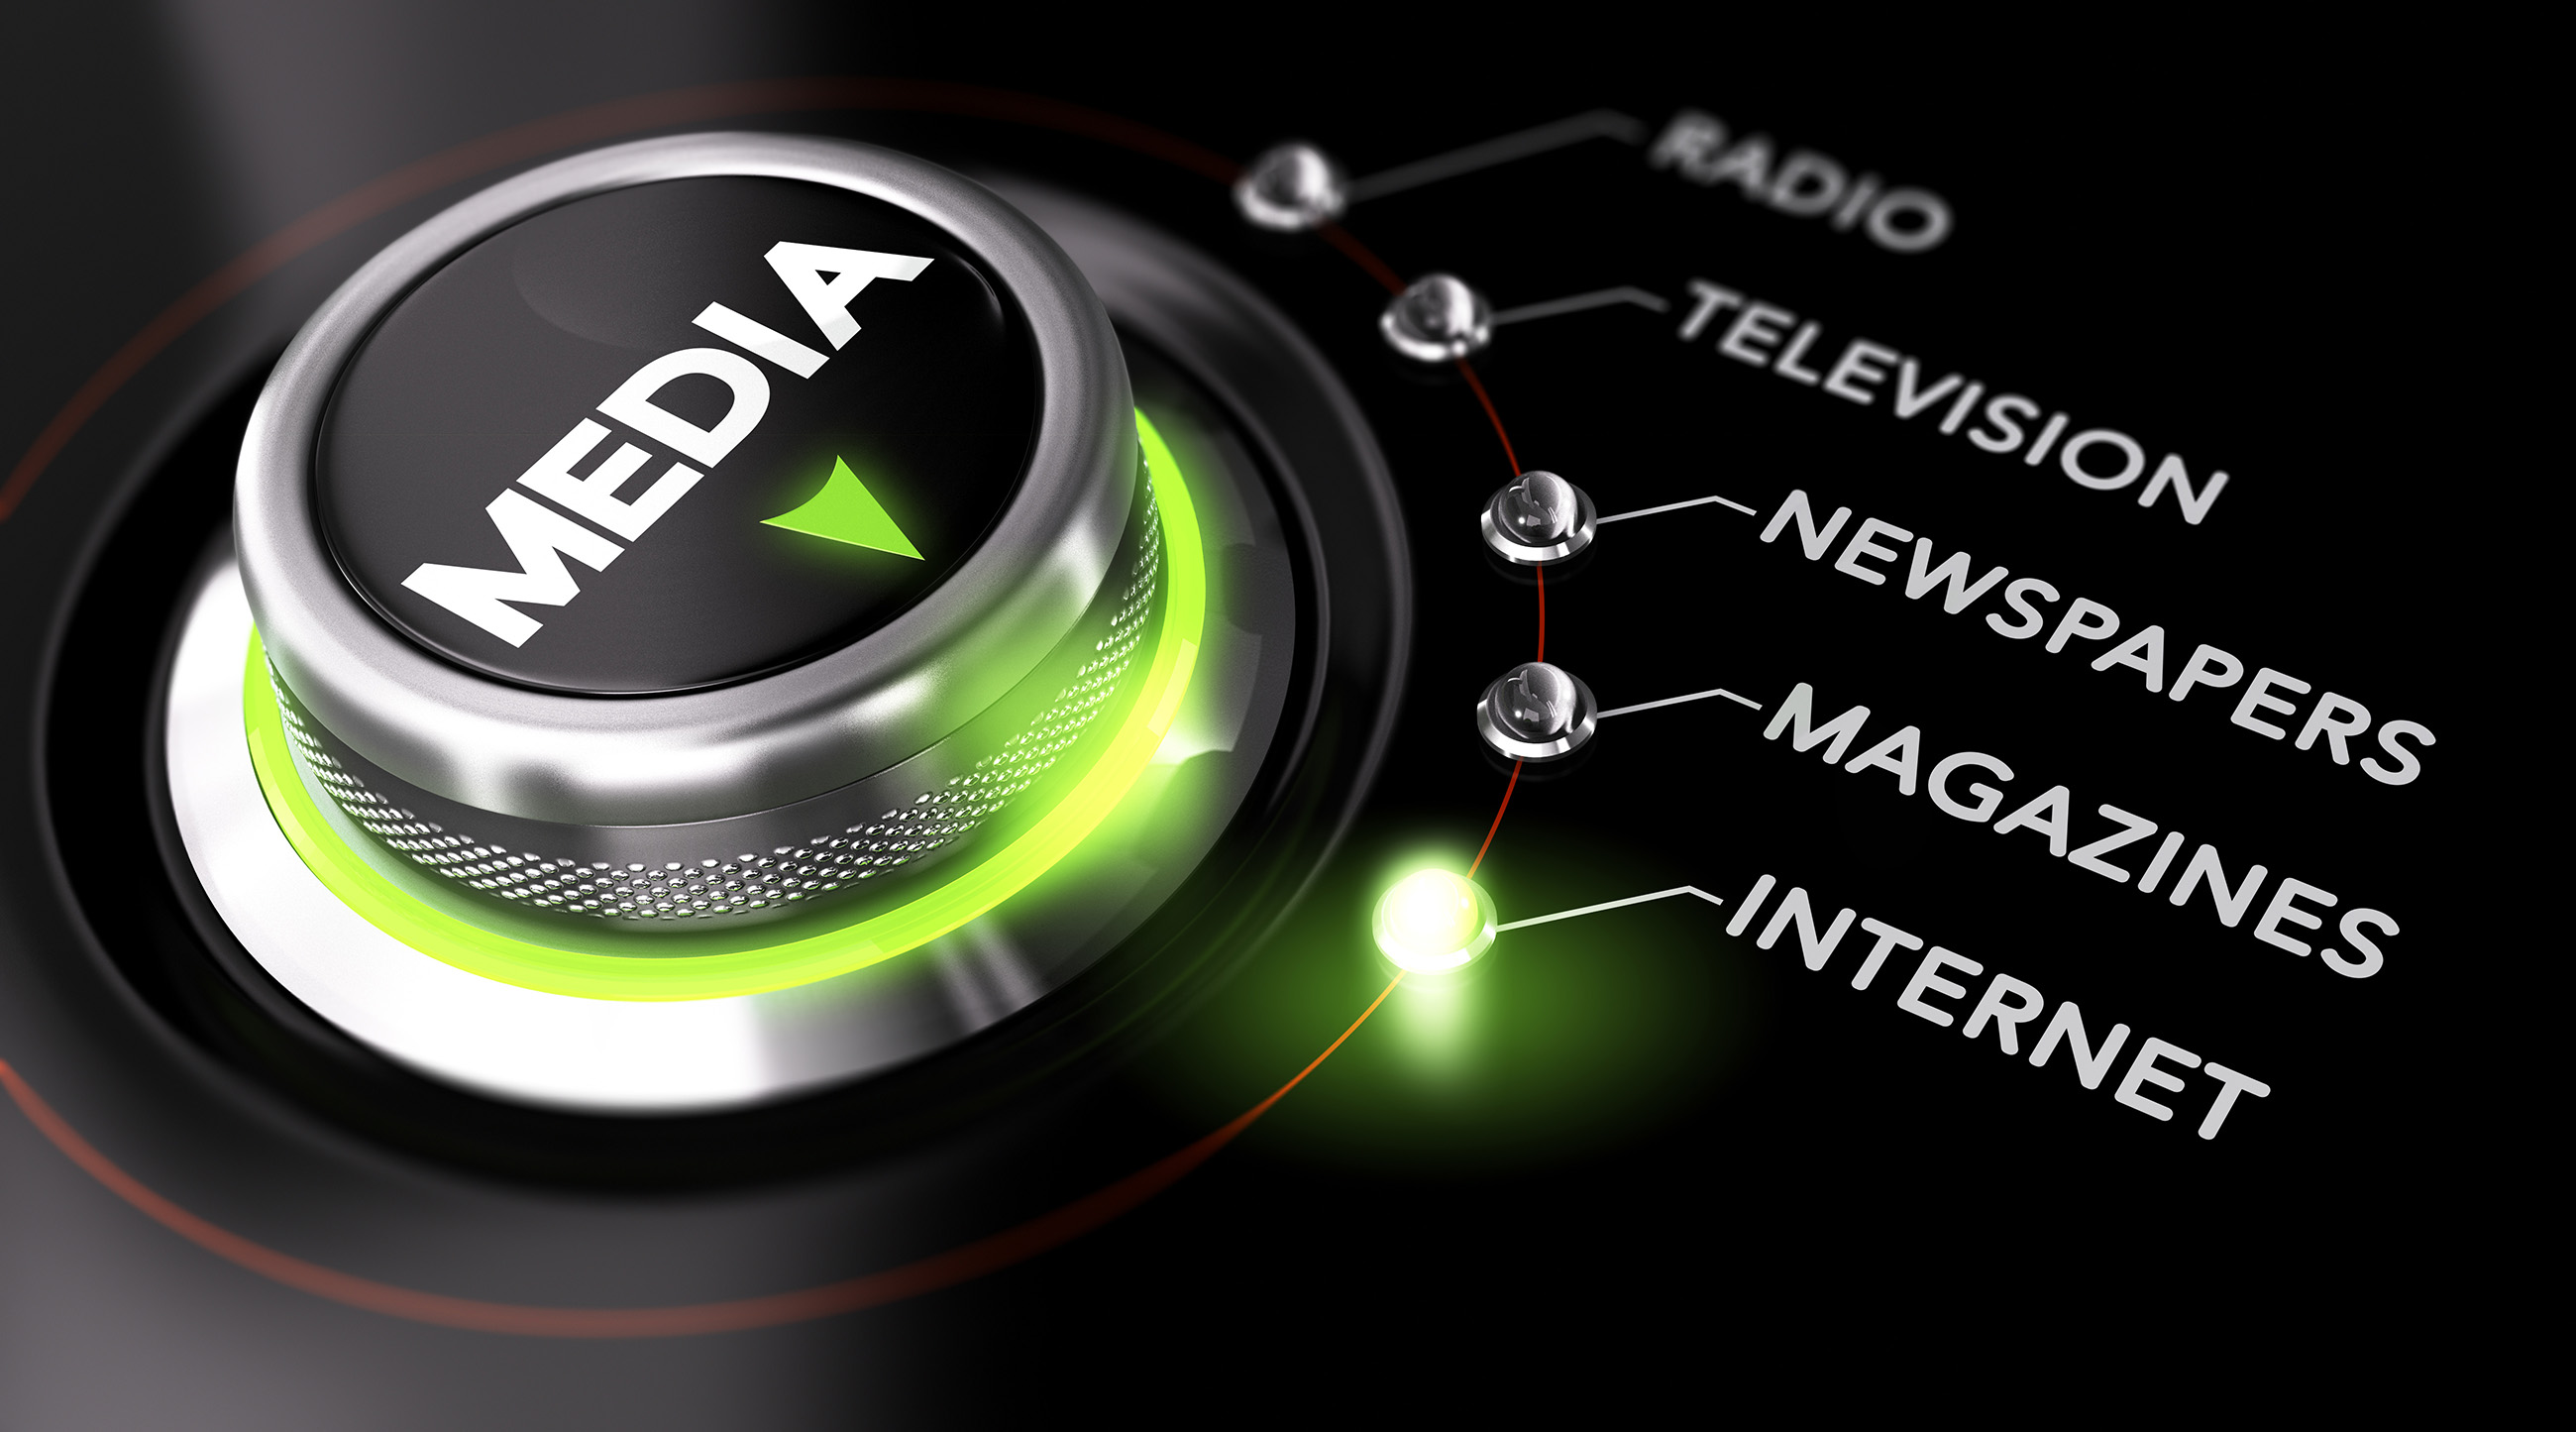 Media companies can use Identity Management to solve challenges